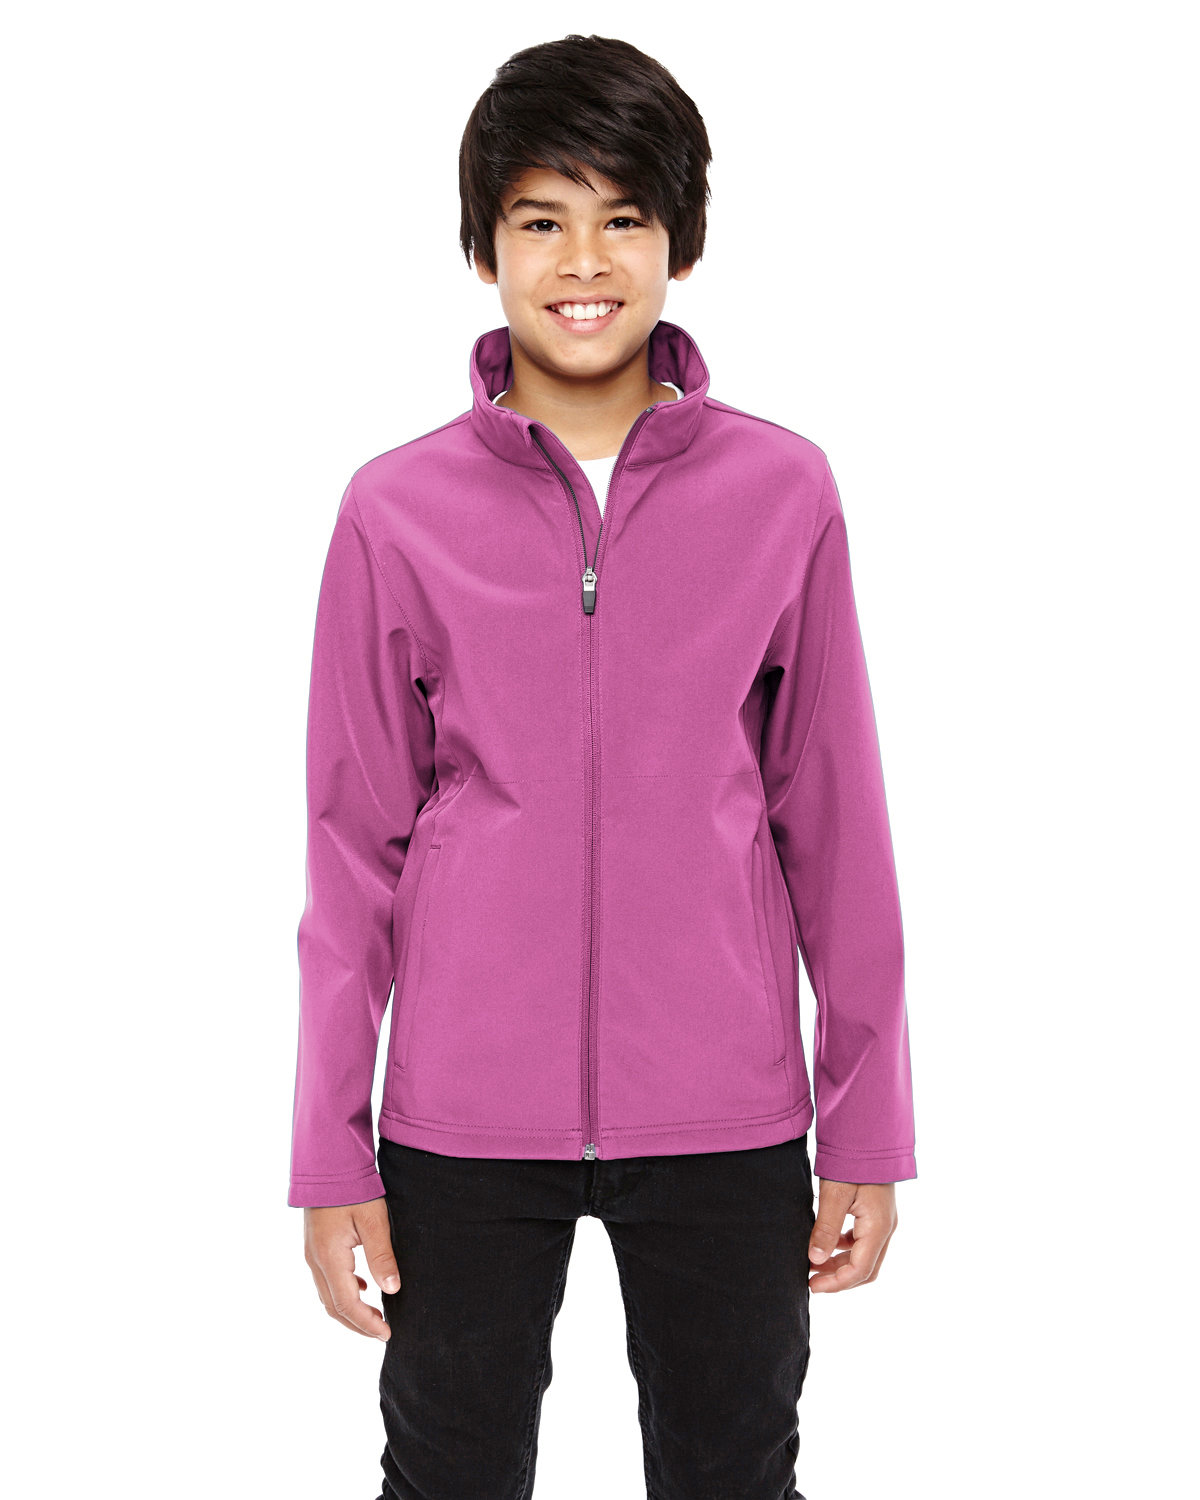 Team 365 Youth Leader Soft Shell Jacket SP CHARITY PINK